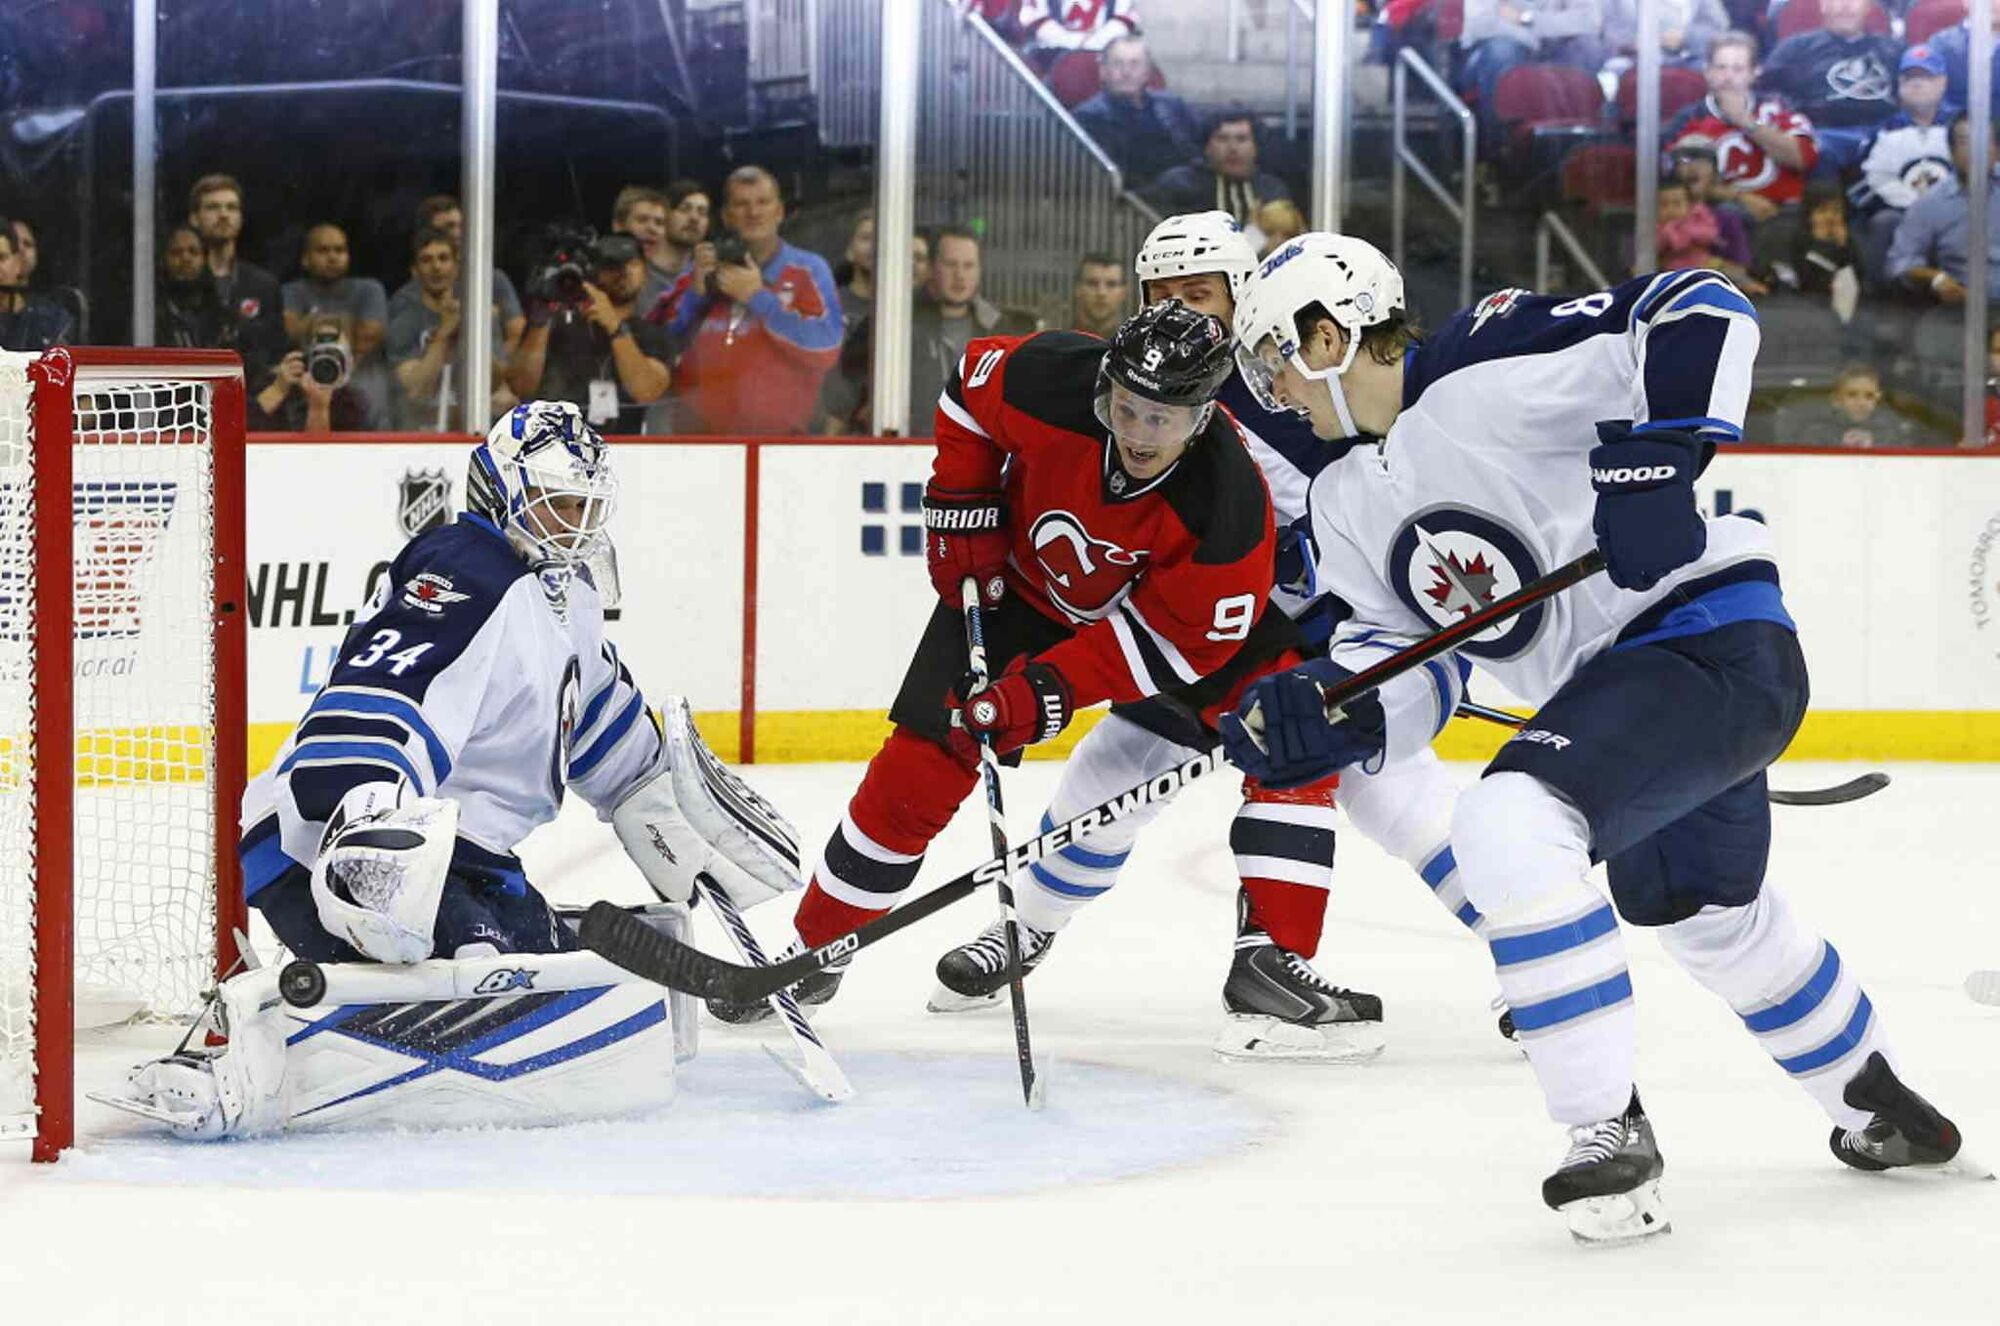 new product c8212 8ef9f Gallery: Winnipeg Jets vs. New Jersey Devils - Oct. 9, 2015 ...